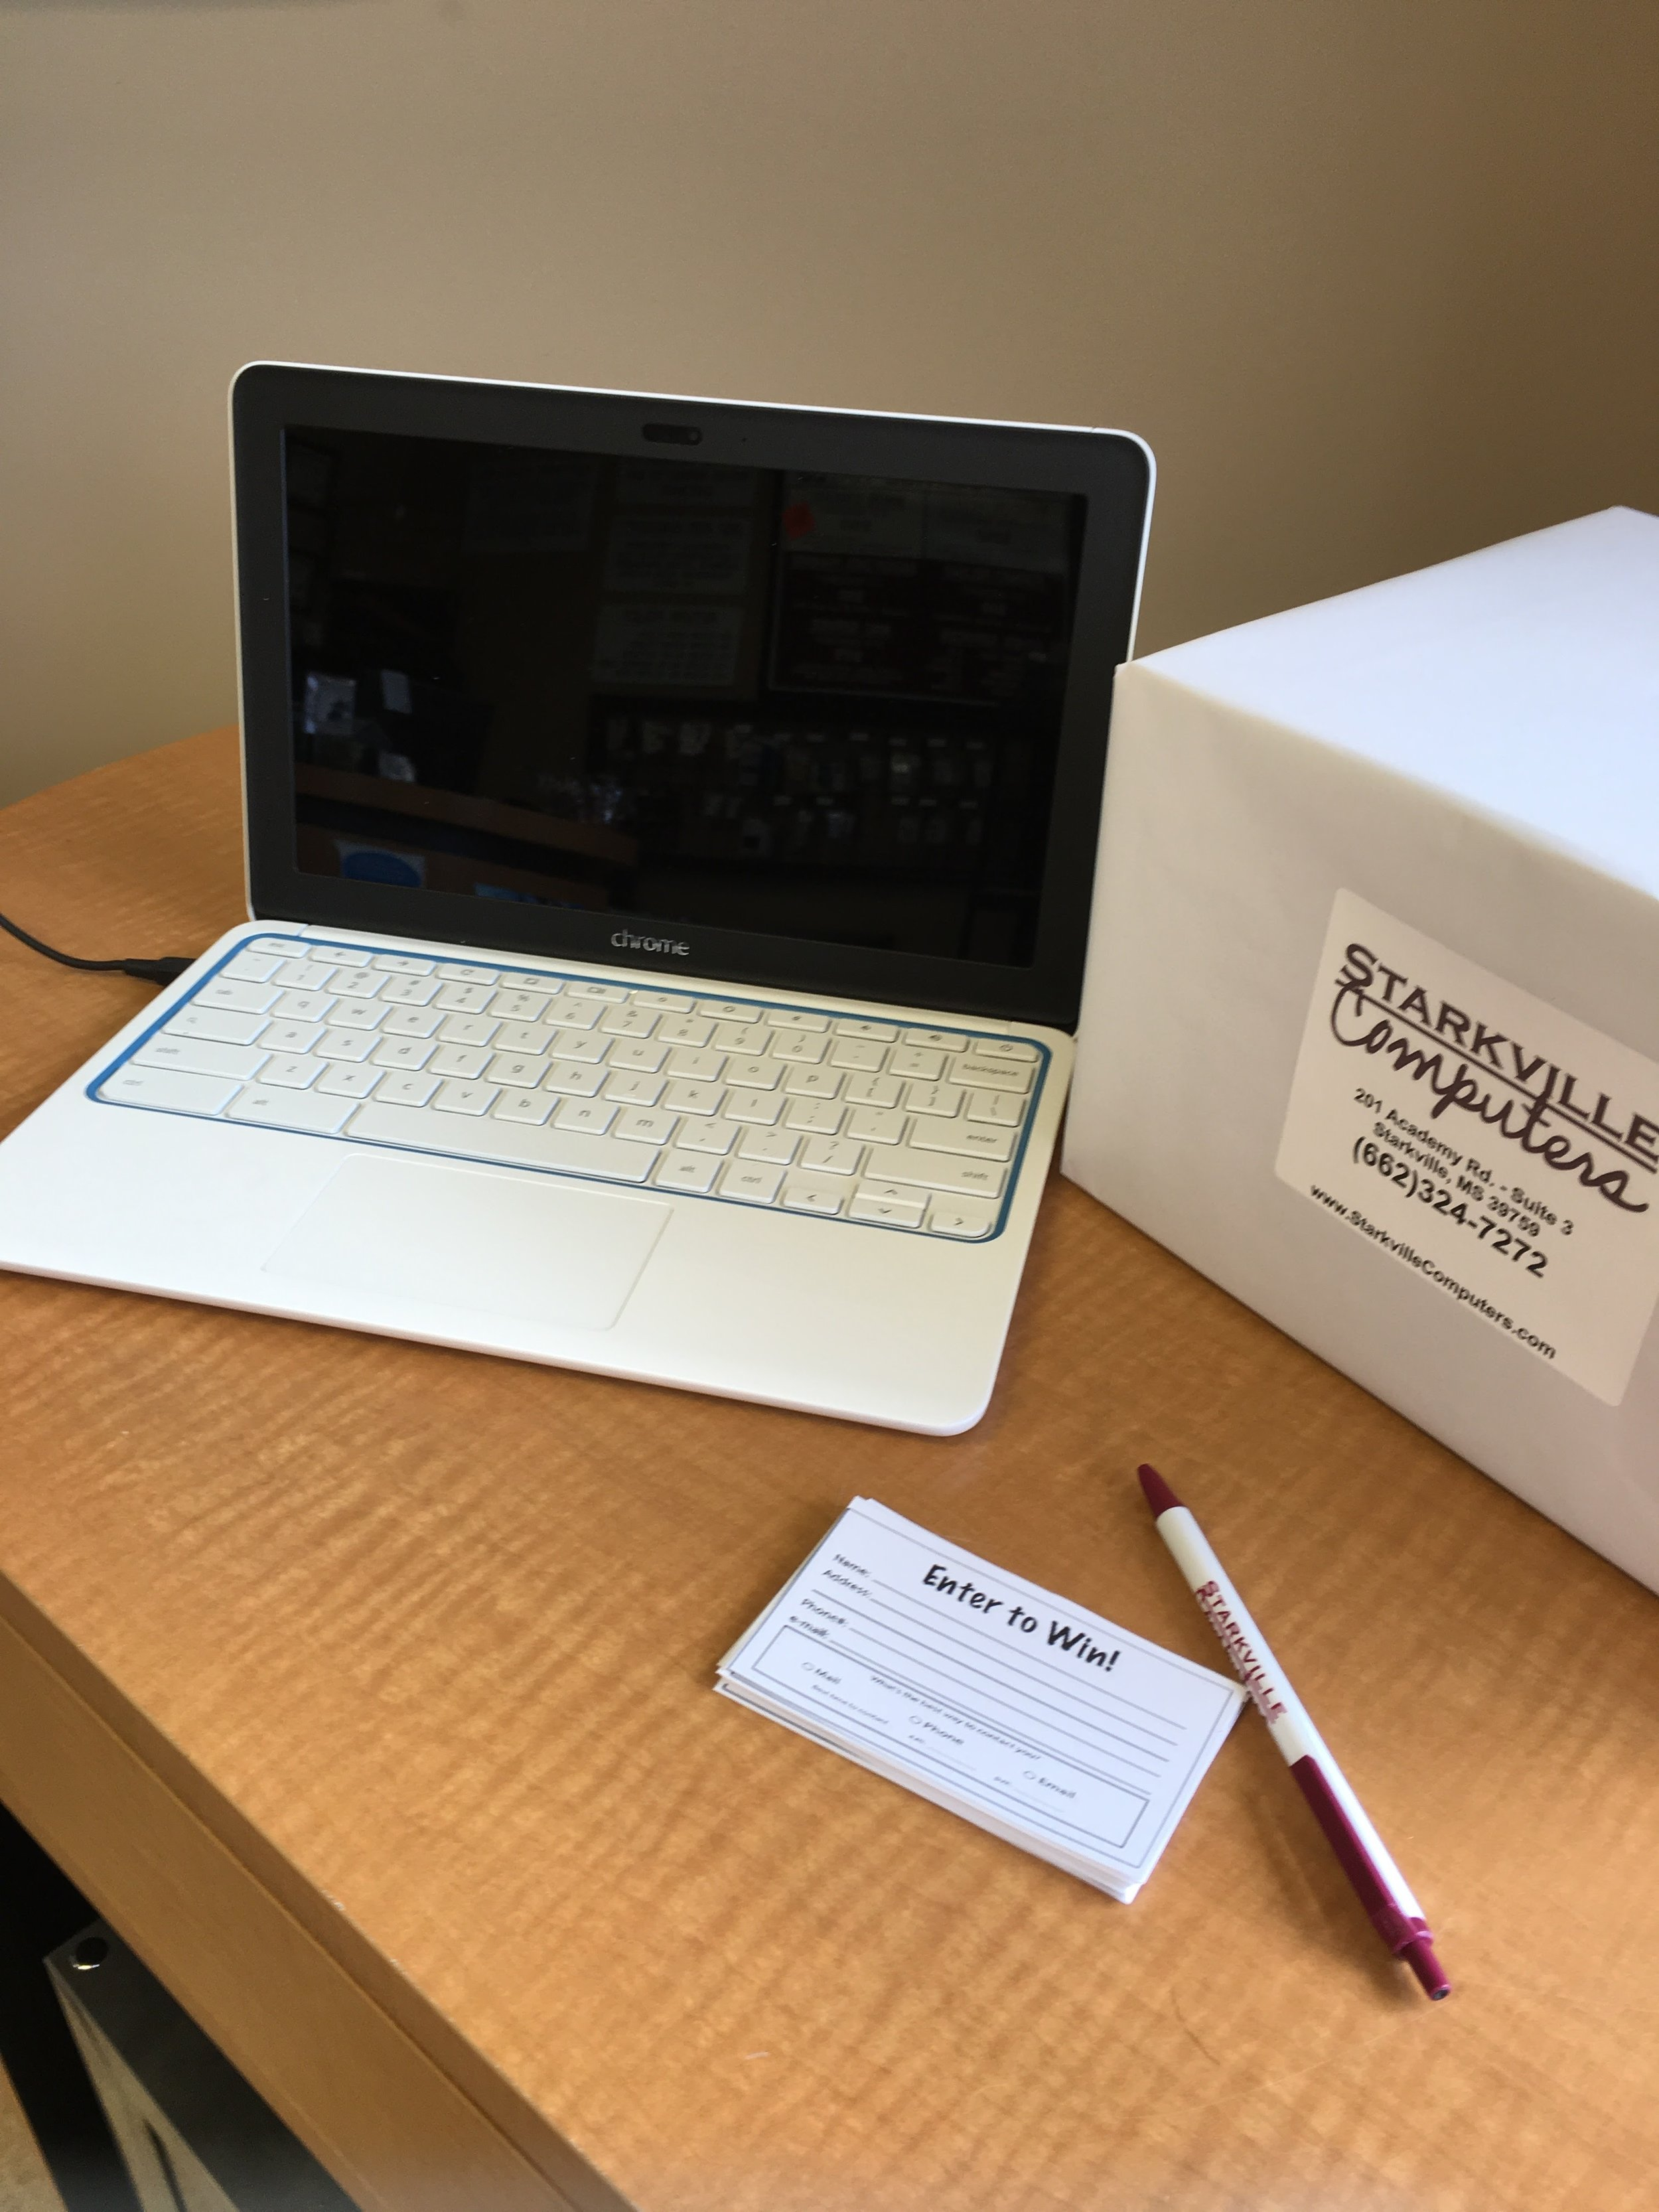 "Specifications: 11"" HP, Google Chrome Operating System, 1.7GHz, 2GB RAM, 16GB SSD"